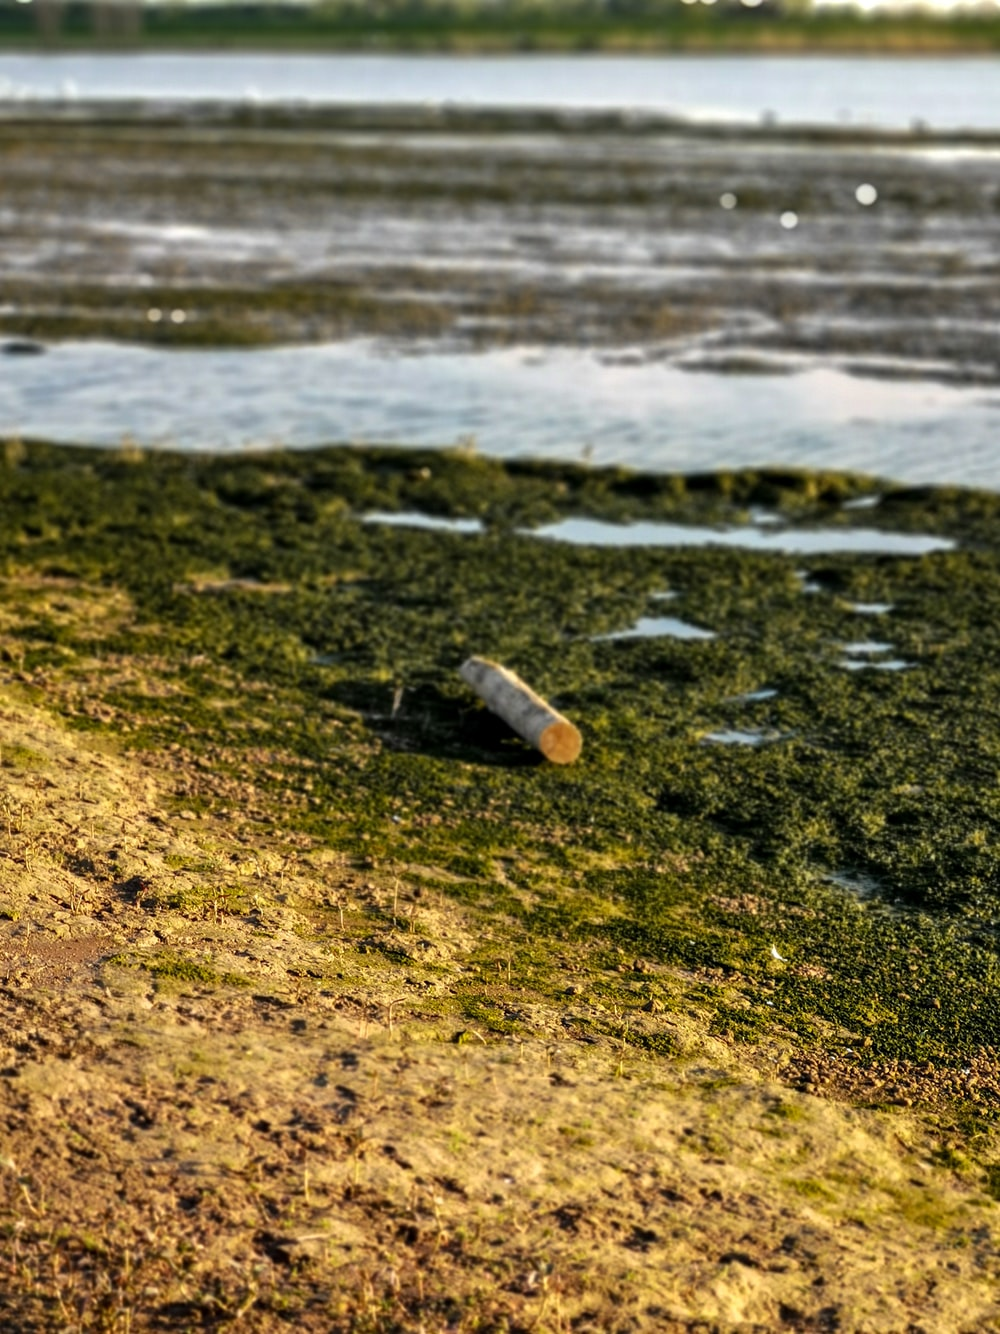 clear glass bottle on brown sand near body of water during daytime